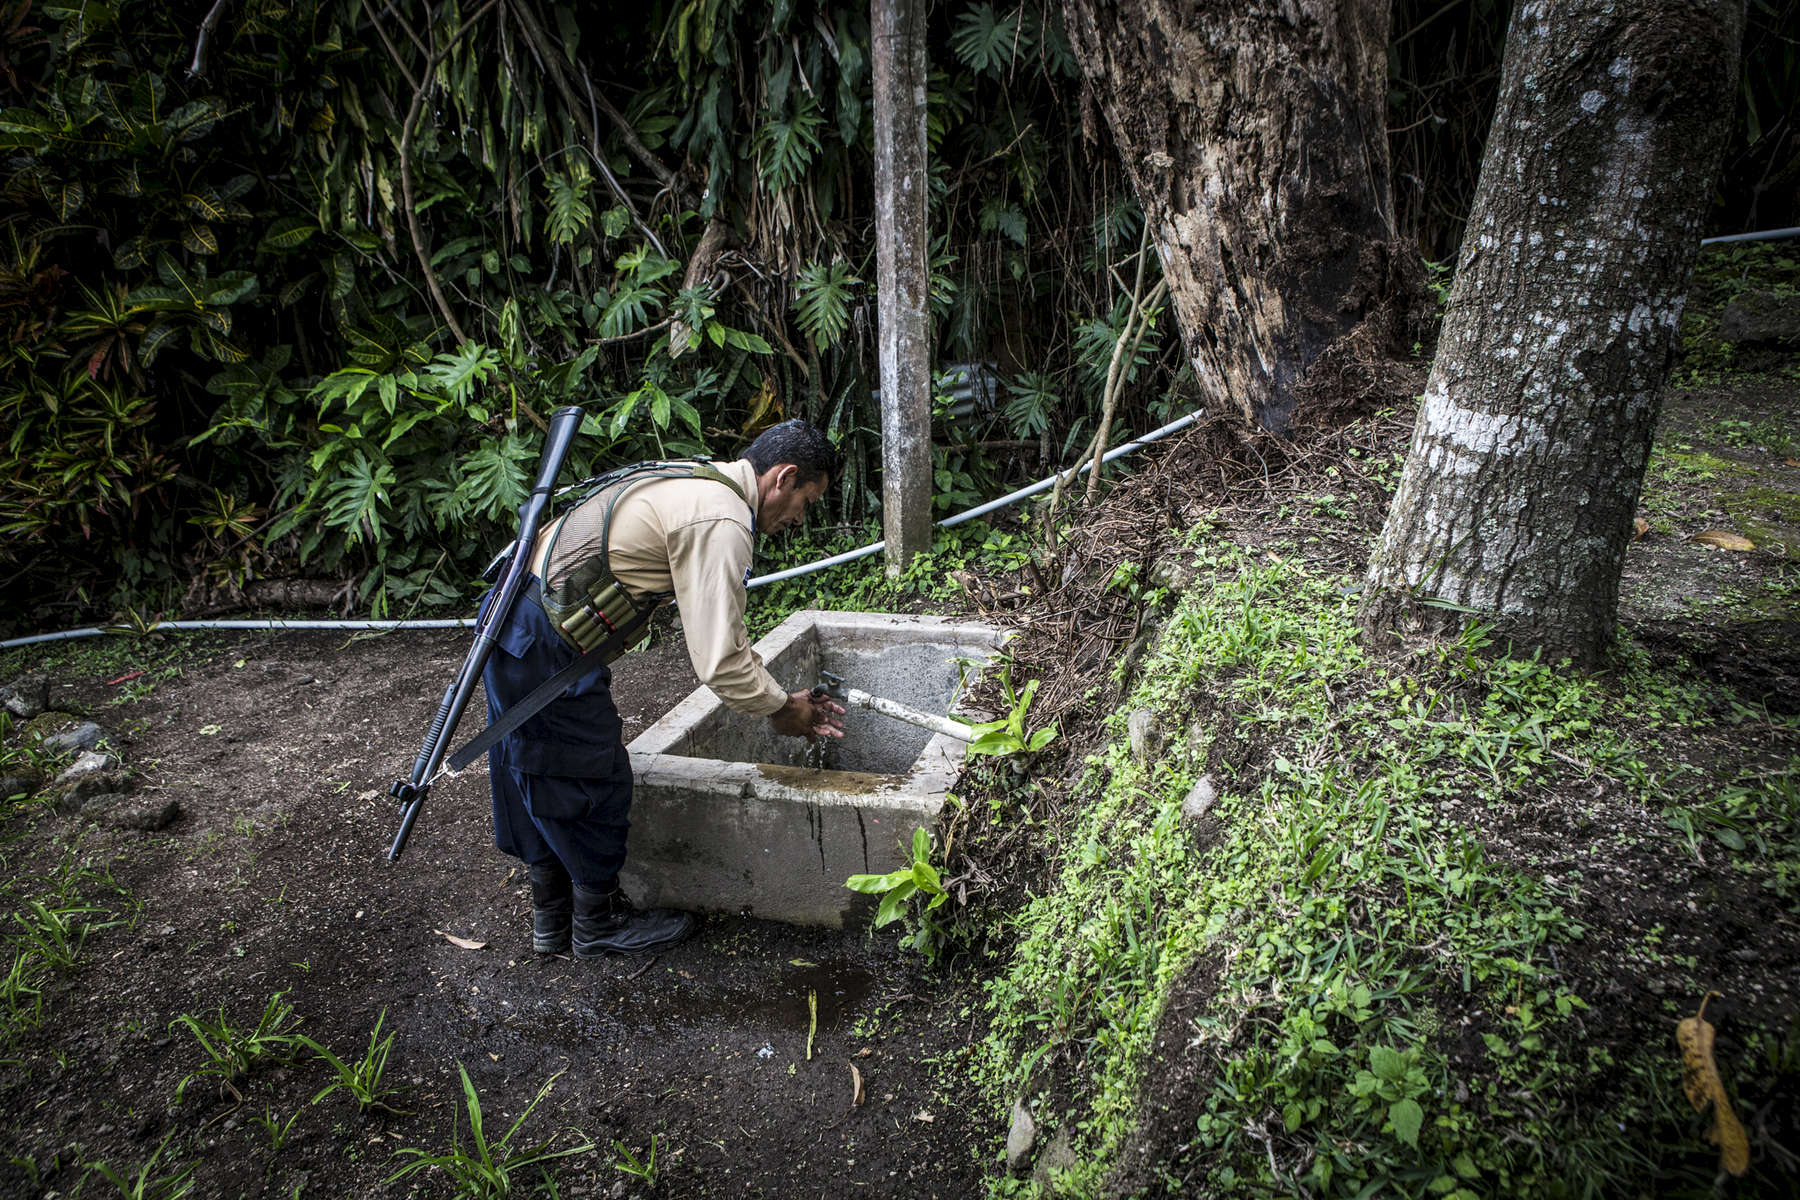 Nejapa, El Salvador- A security guard washes his hands at an outdoor tap at Miranda Cafe in Nejapa, El Salvador on Friday, June 22, 2018.Nejapa is not only home to a number of bottling plants including Coca Cola and Lactolac, it also lies above one of El Salvador's largest aquifers, feeding neighboring communities and much of San Salvador.The San Antonio River, once a main source of water for Nejapa, has been contaminated by the waste produced by industrial bottling plants since their arrival in 1996. Bio filtration systems were installed but have been broken since 2006. (Jane Hahn)